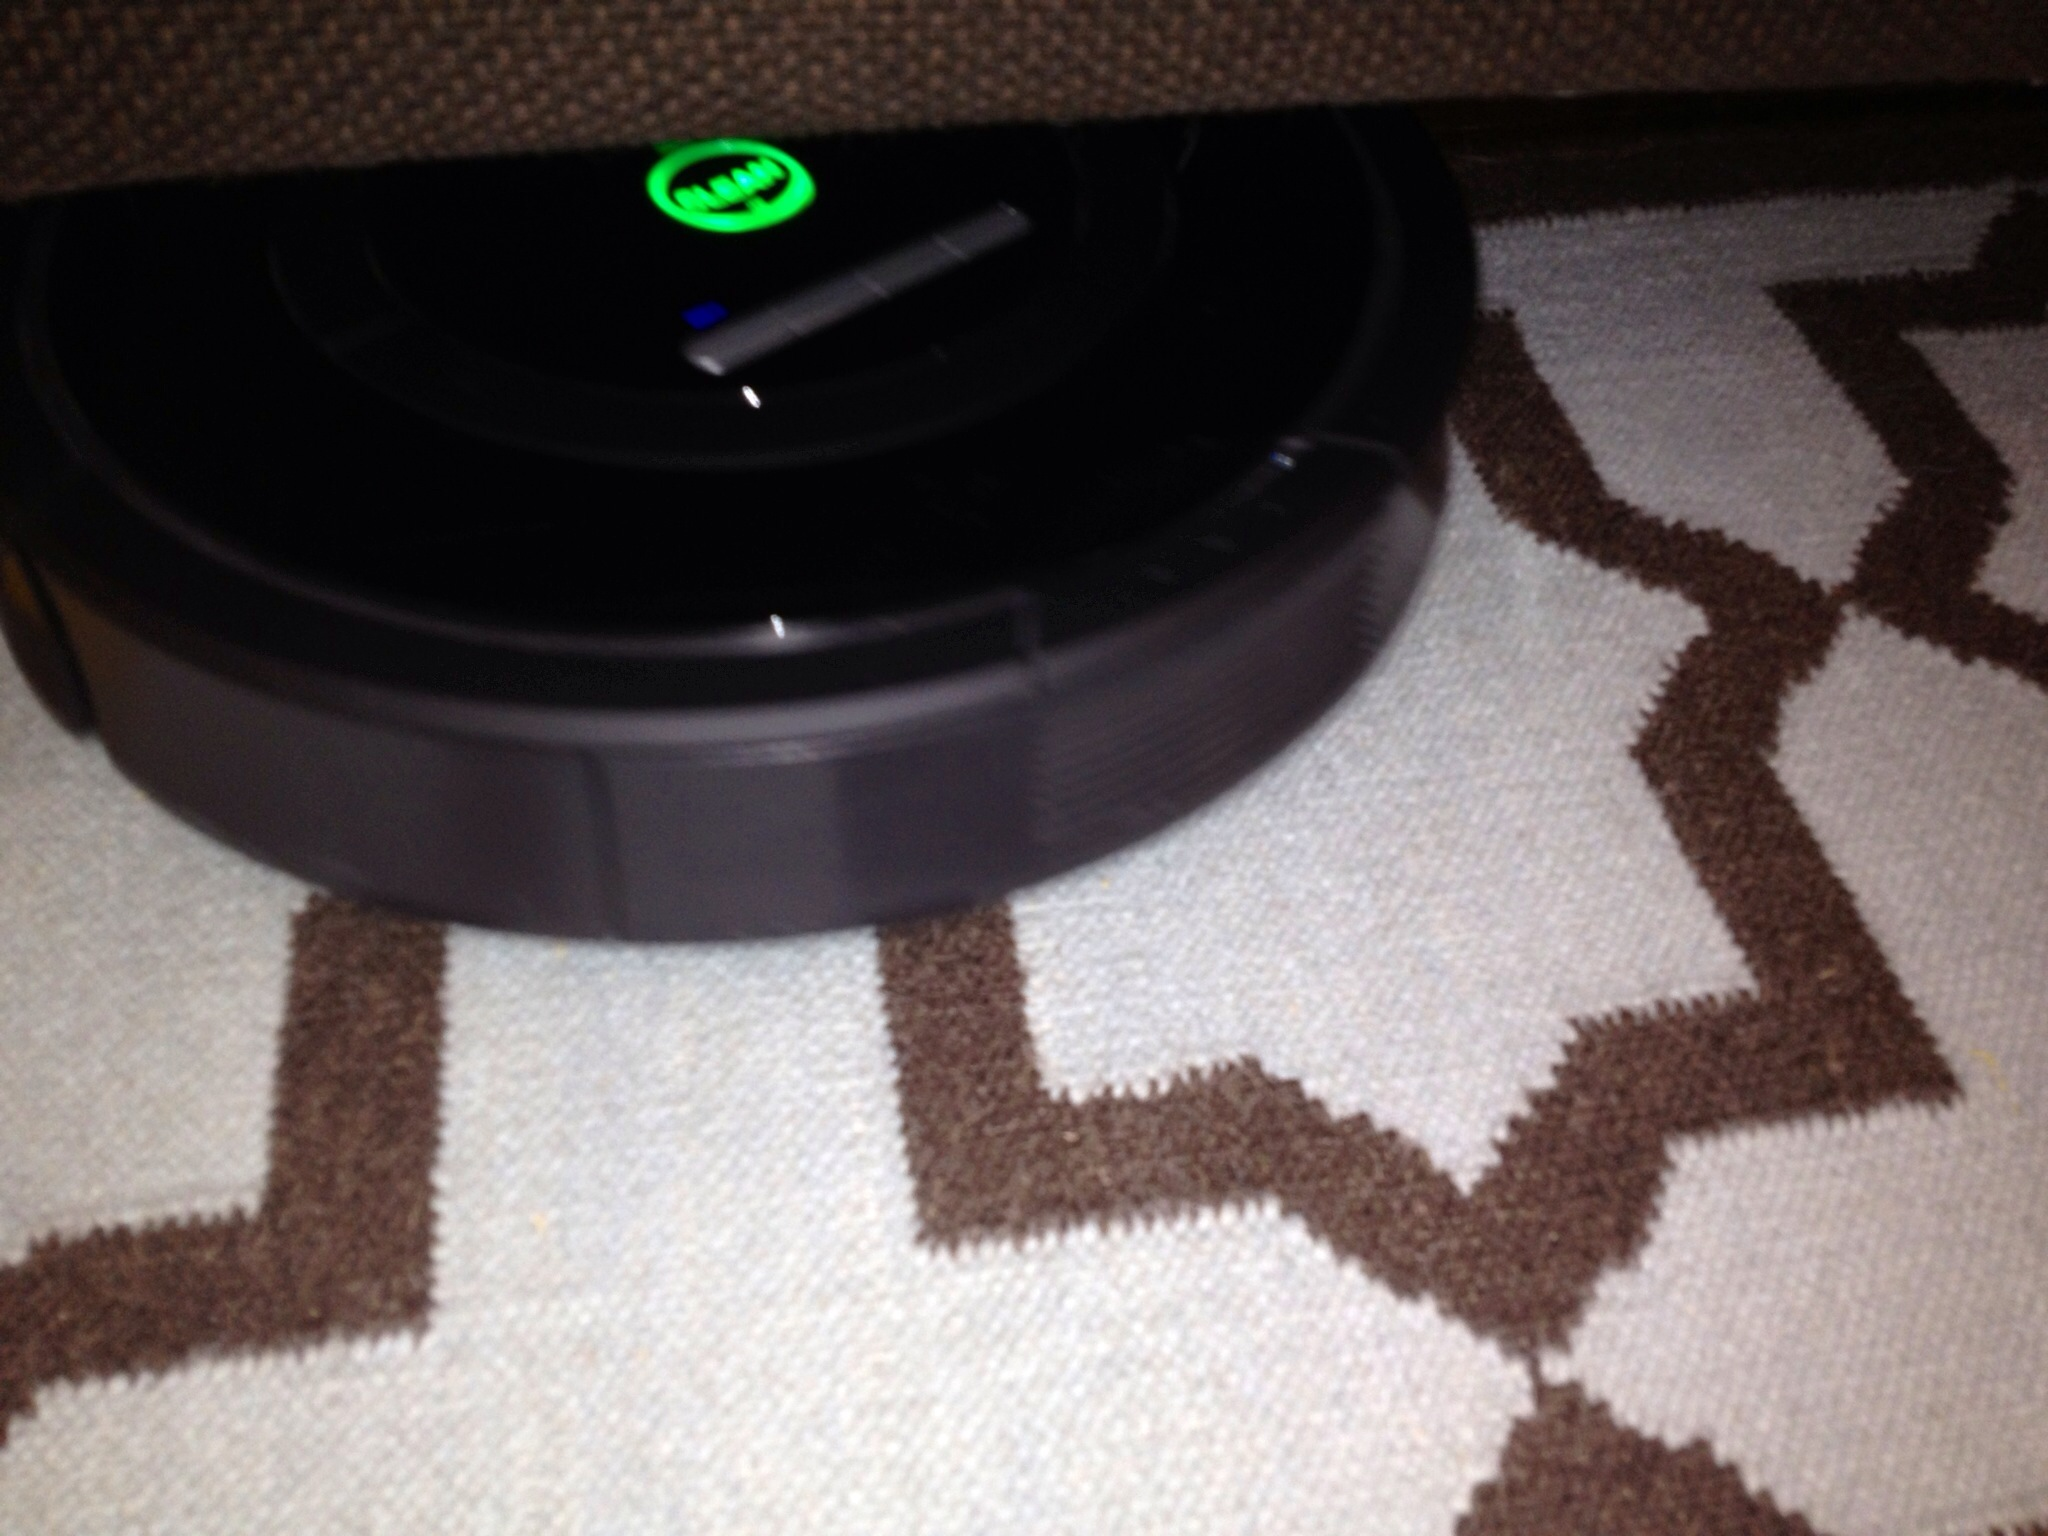 The Roomba is finding its way under the couch.